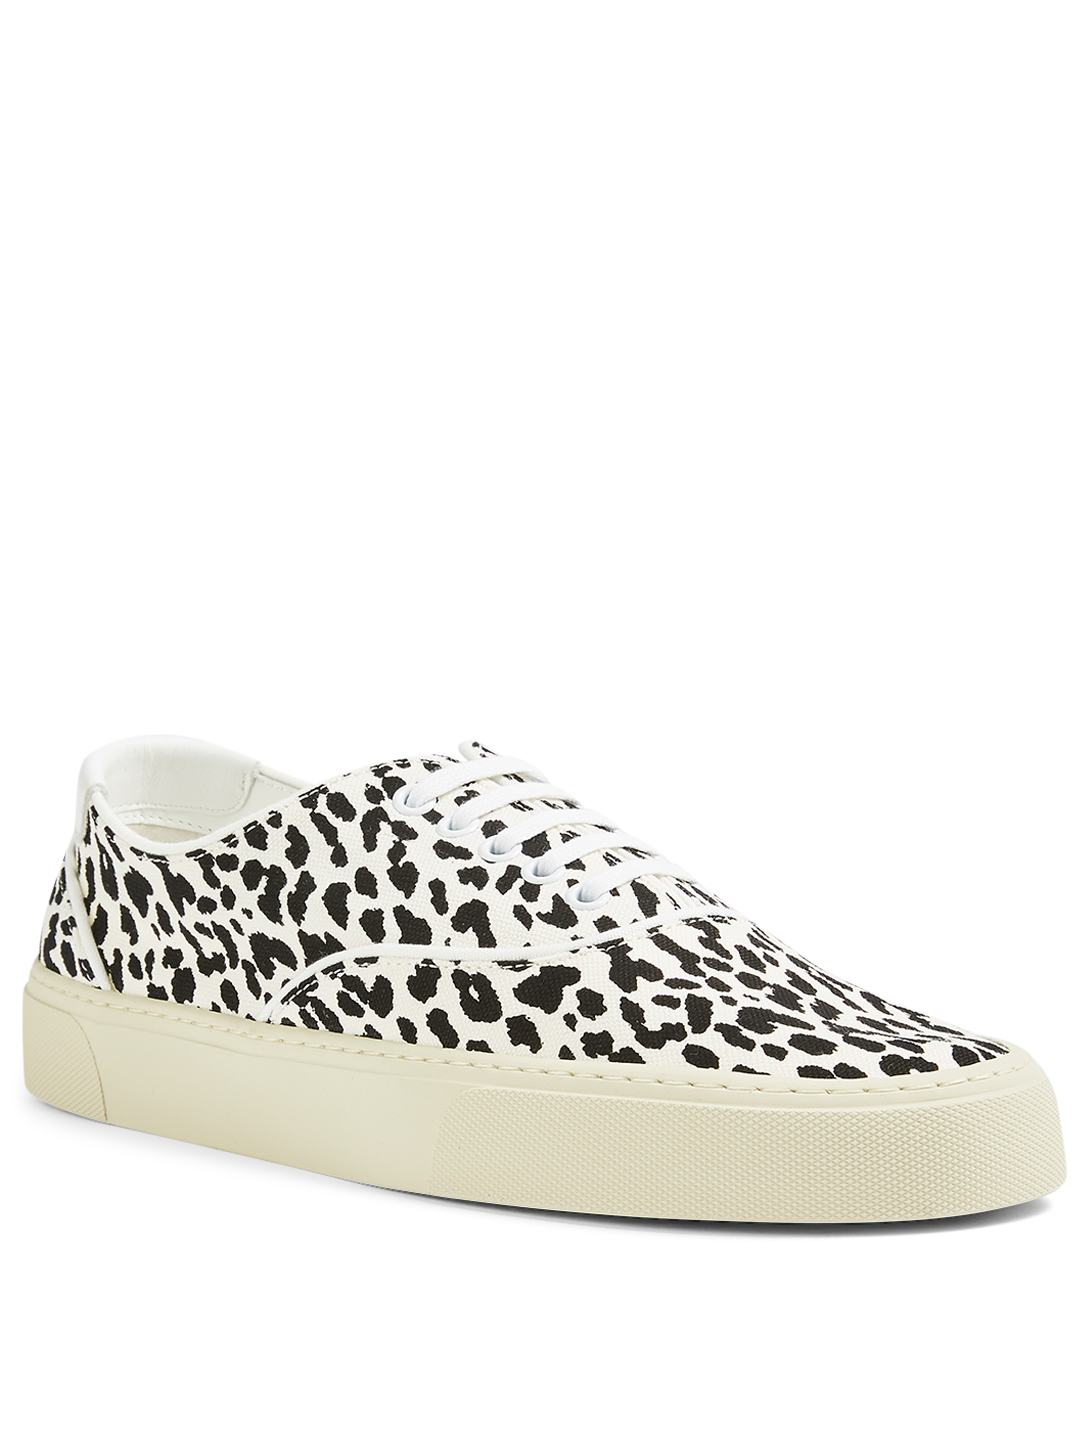 SAINT LAURENT Venice Canvas Sneakers In Leopard Print Men's Multi